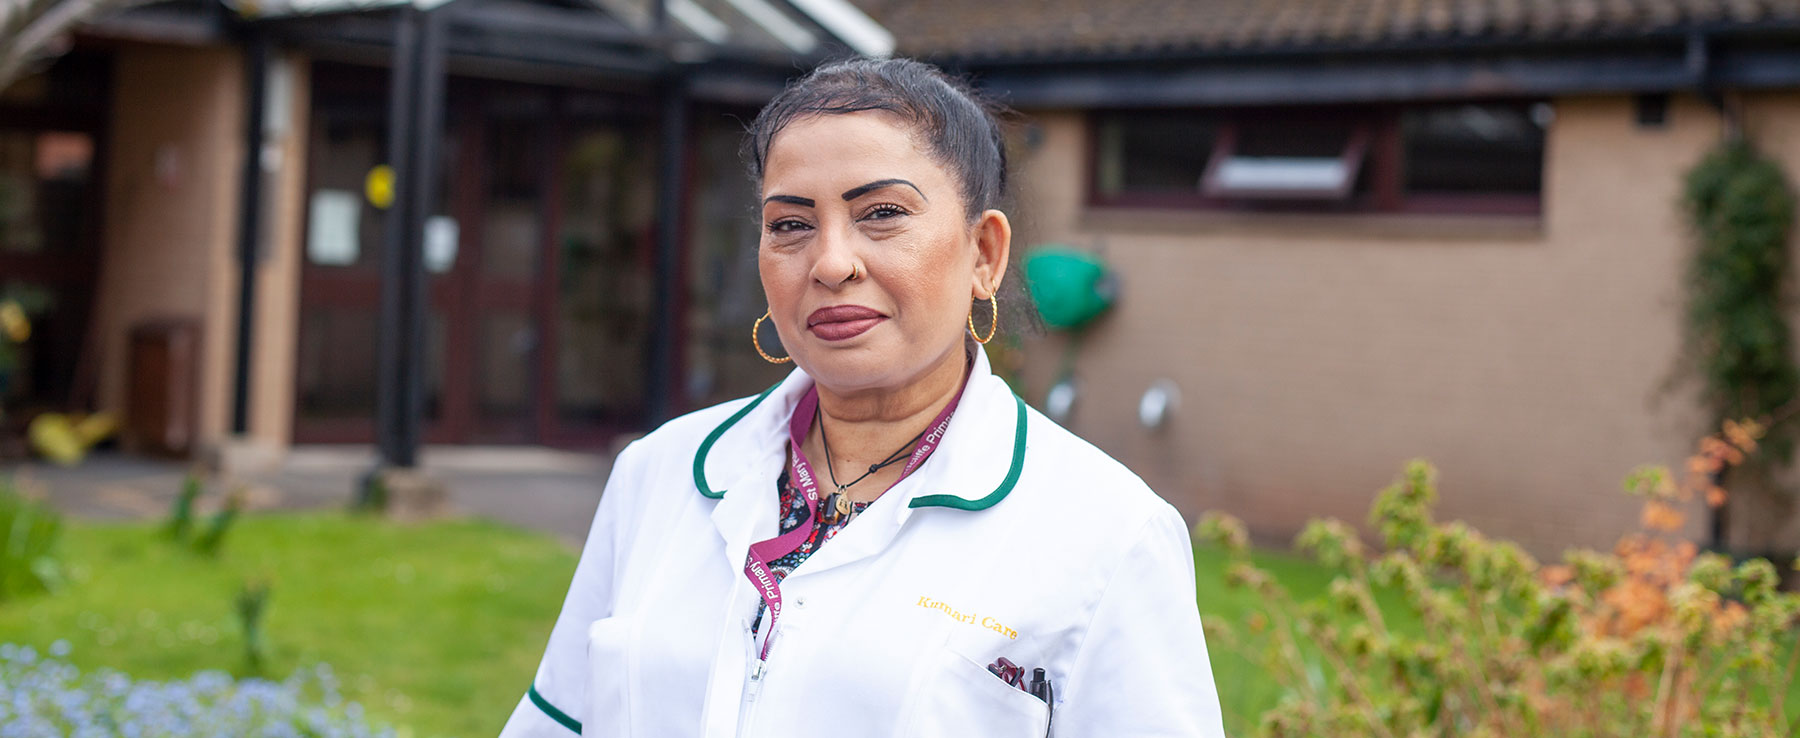 Neelam - Proud to Care Bristol